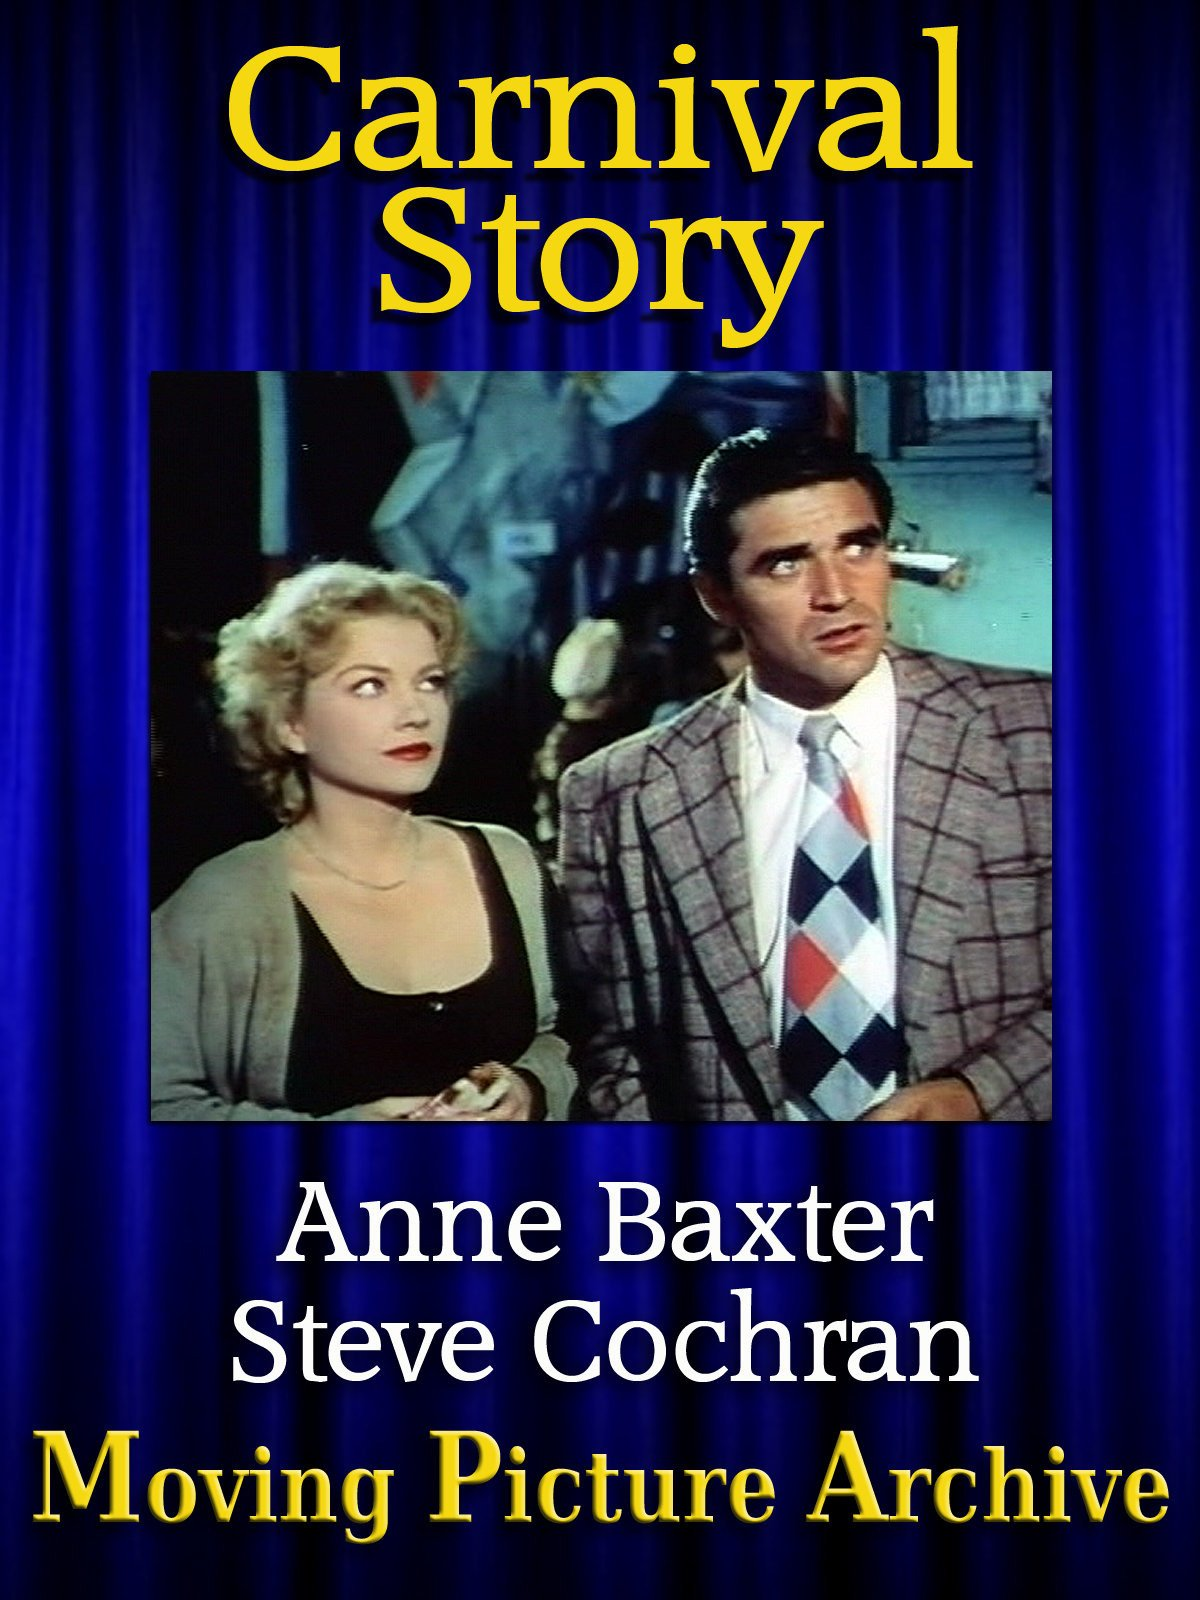 Carnival Story - Color - 1954 on Amazon Prime Video UK